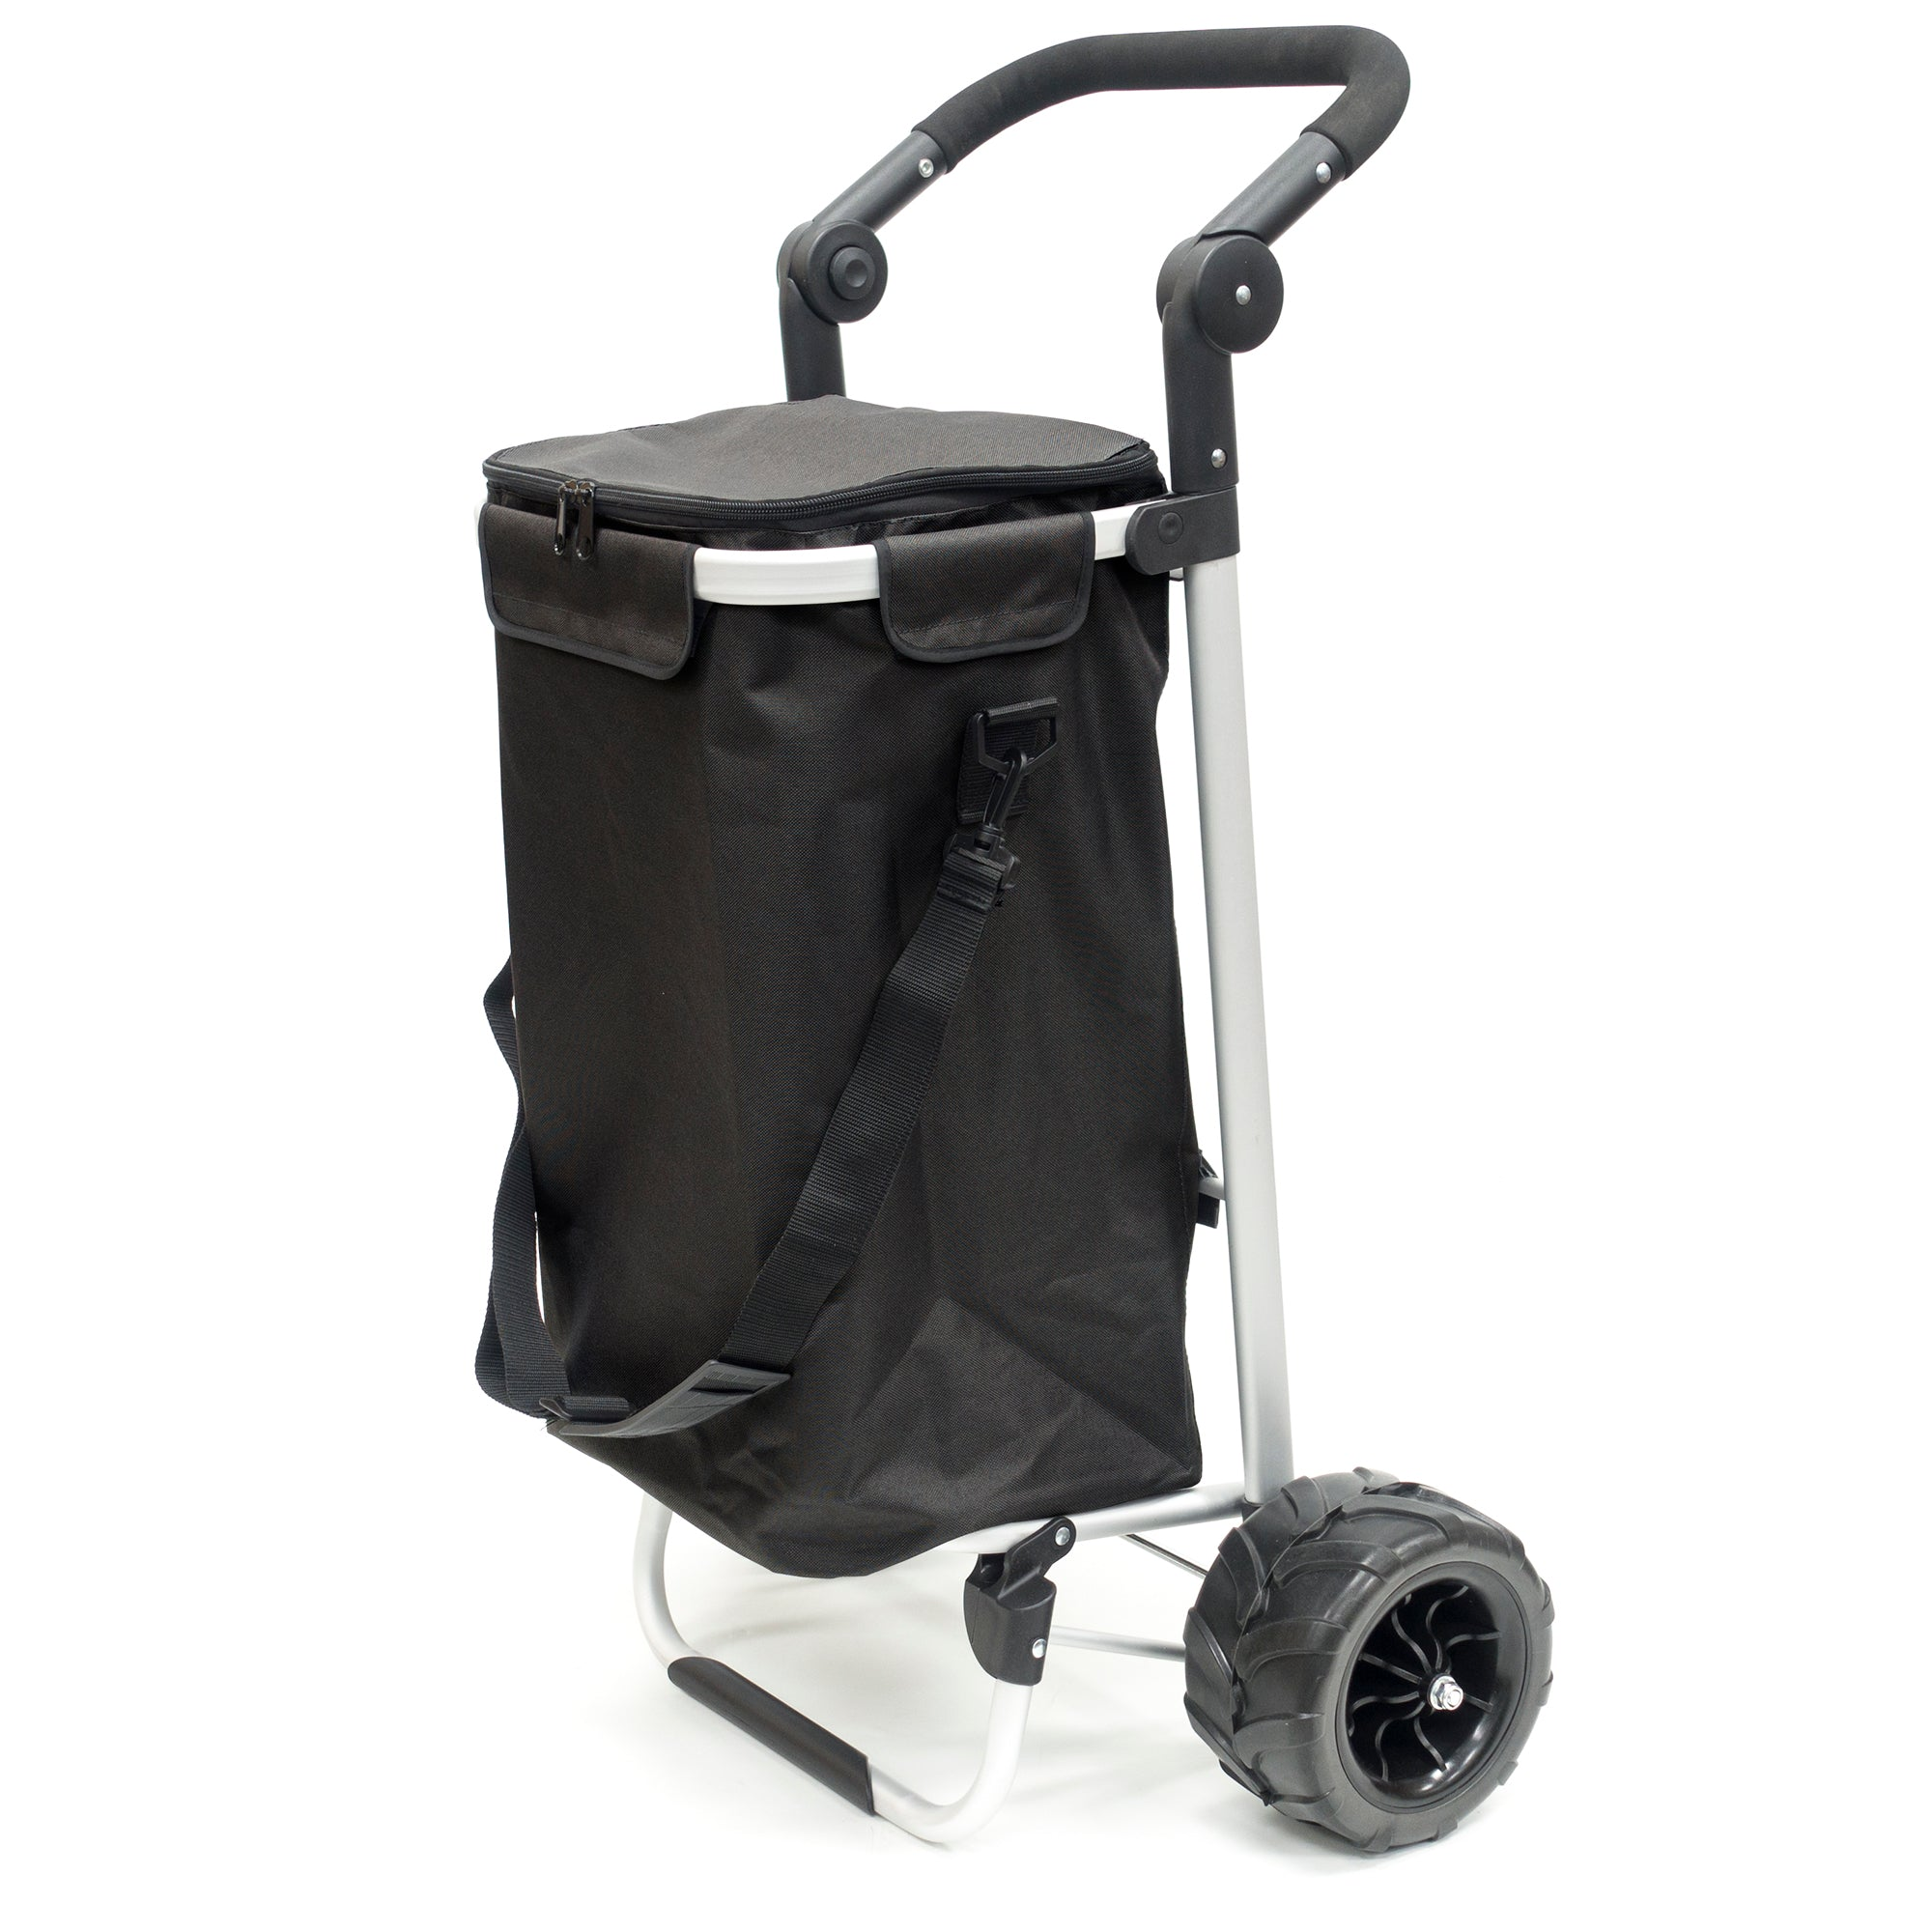 All-Terrain Folding Aluminum Trolley with Adjustable Handle Black 890300